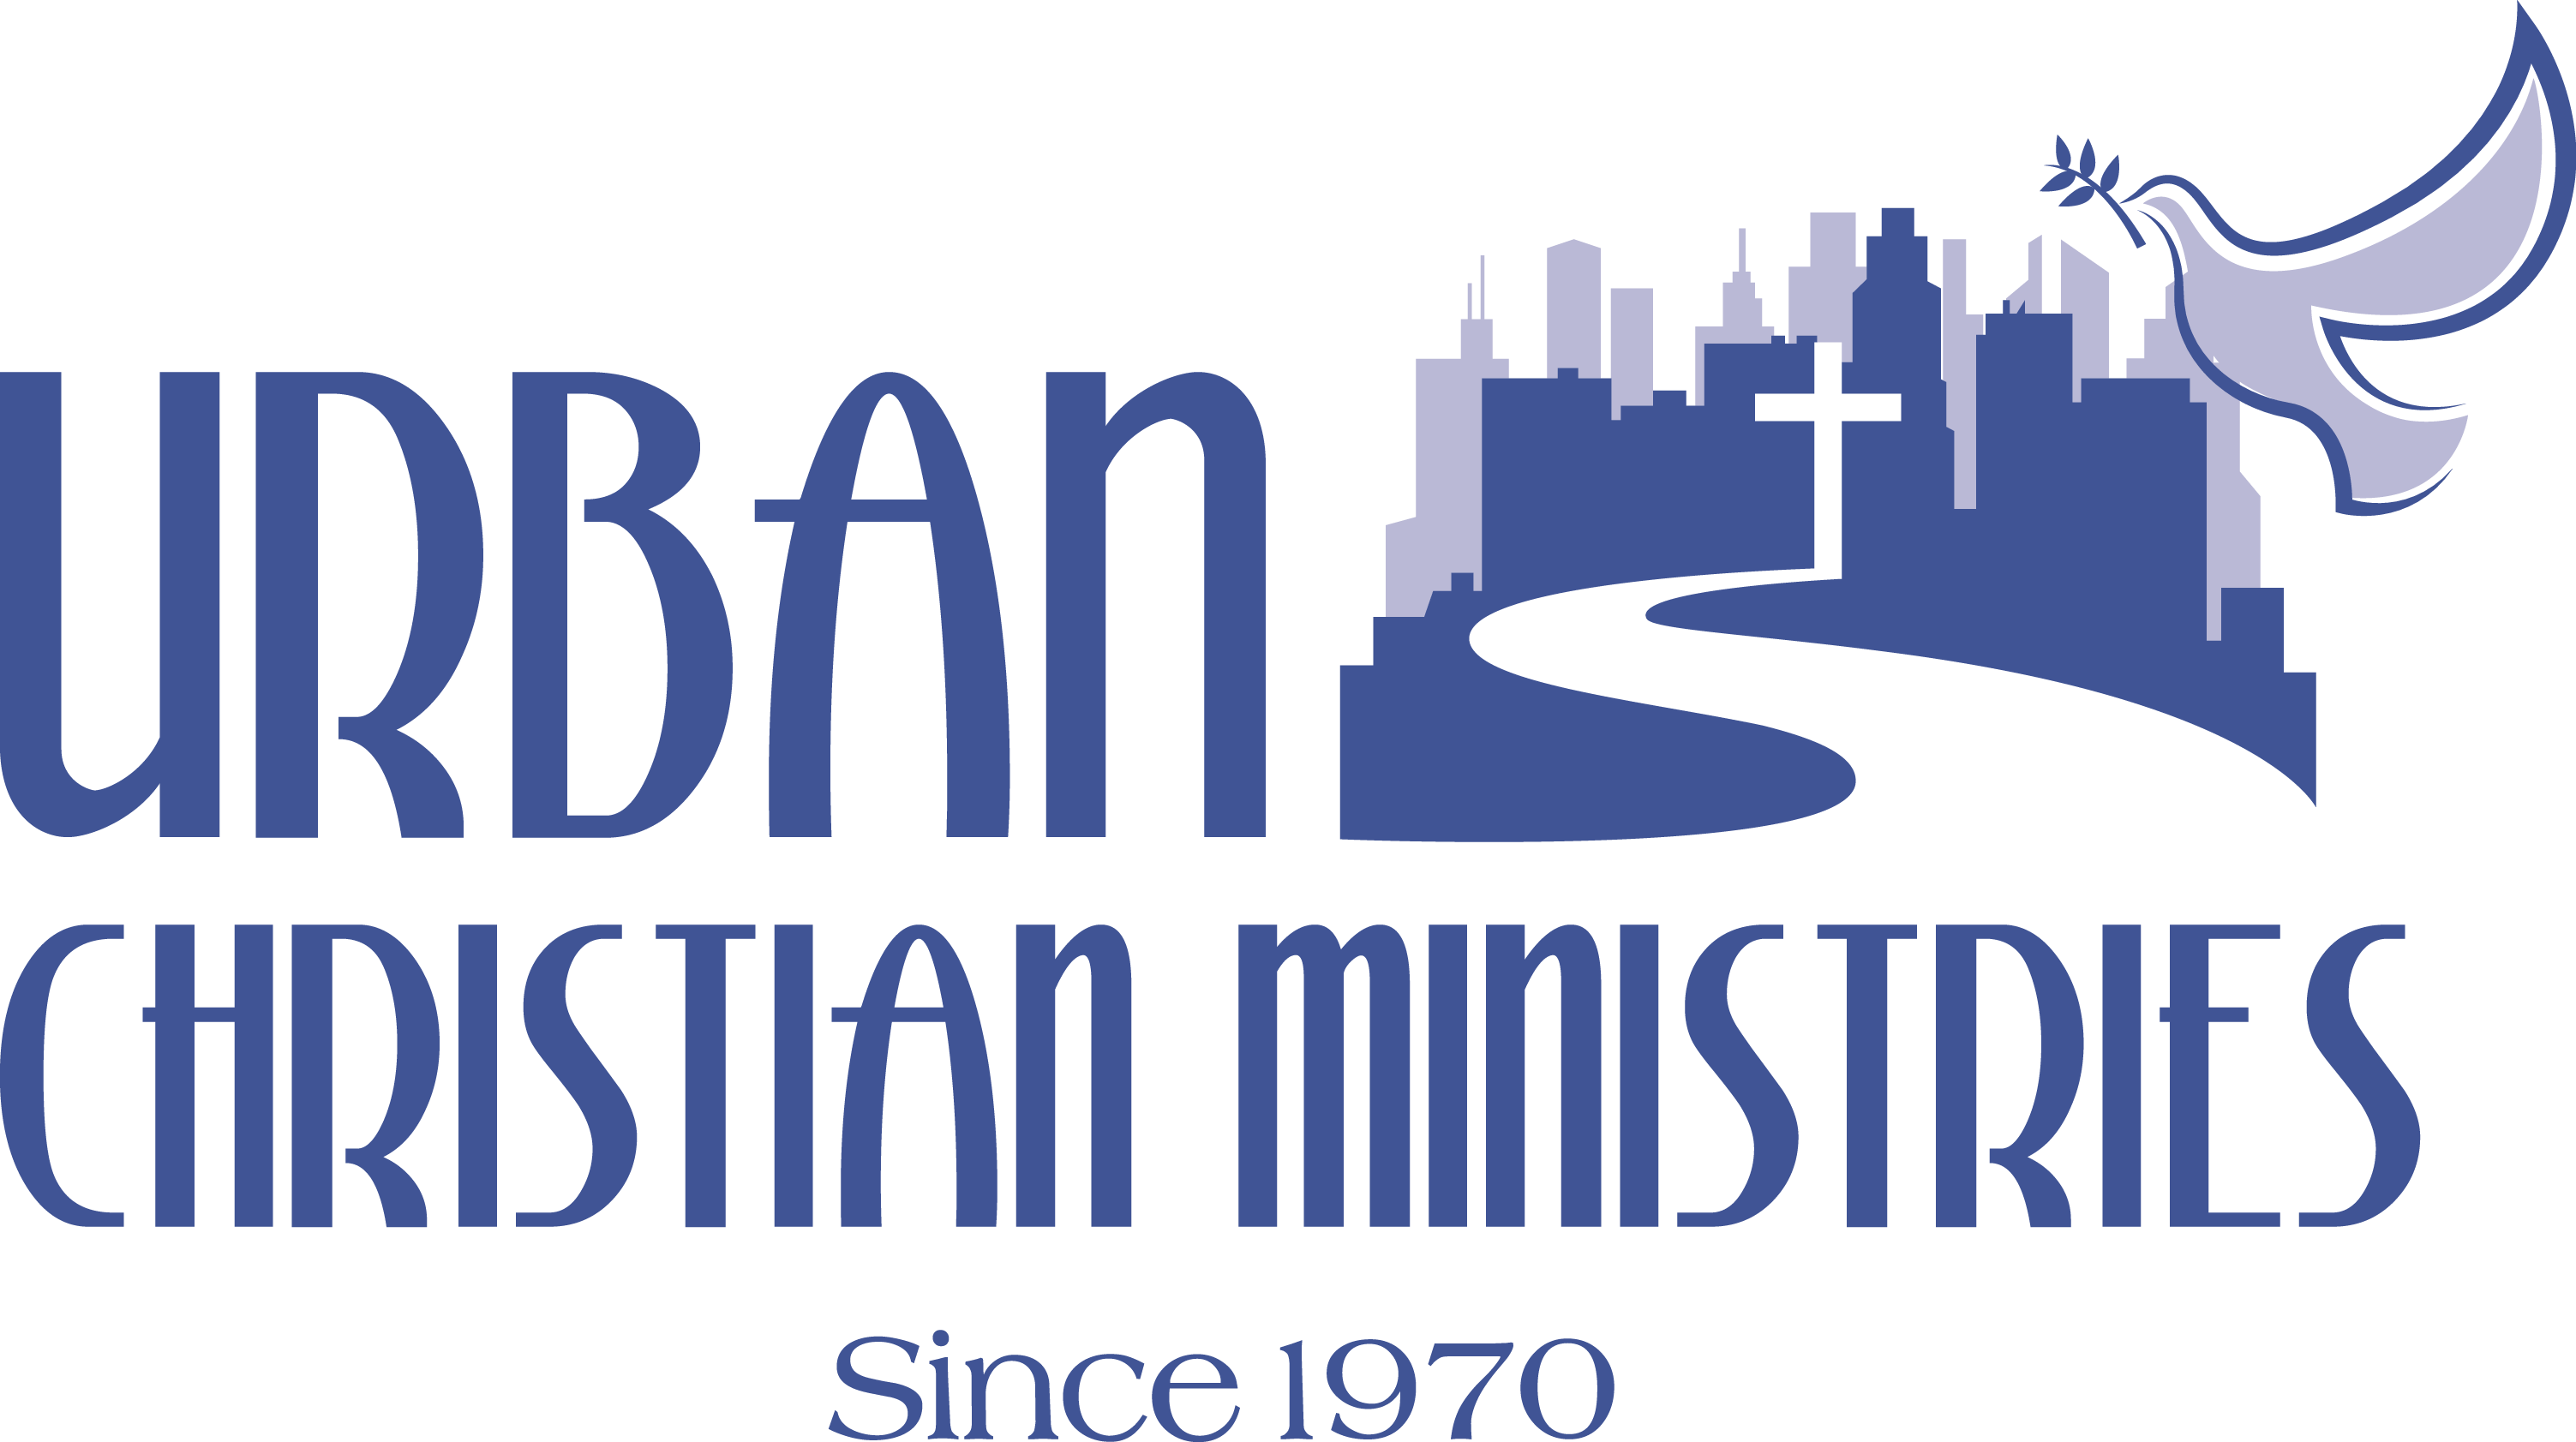 Urban Christian Ministries Food Pantry and Food Bank